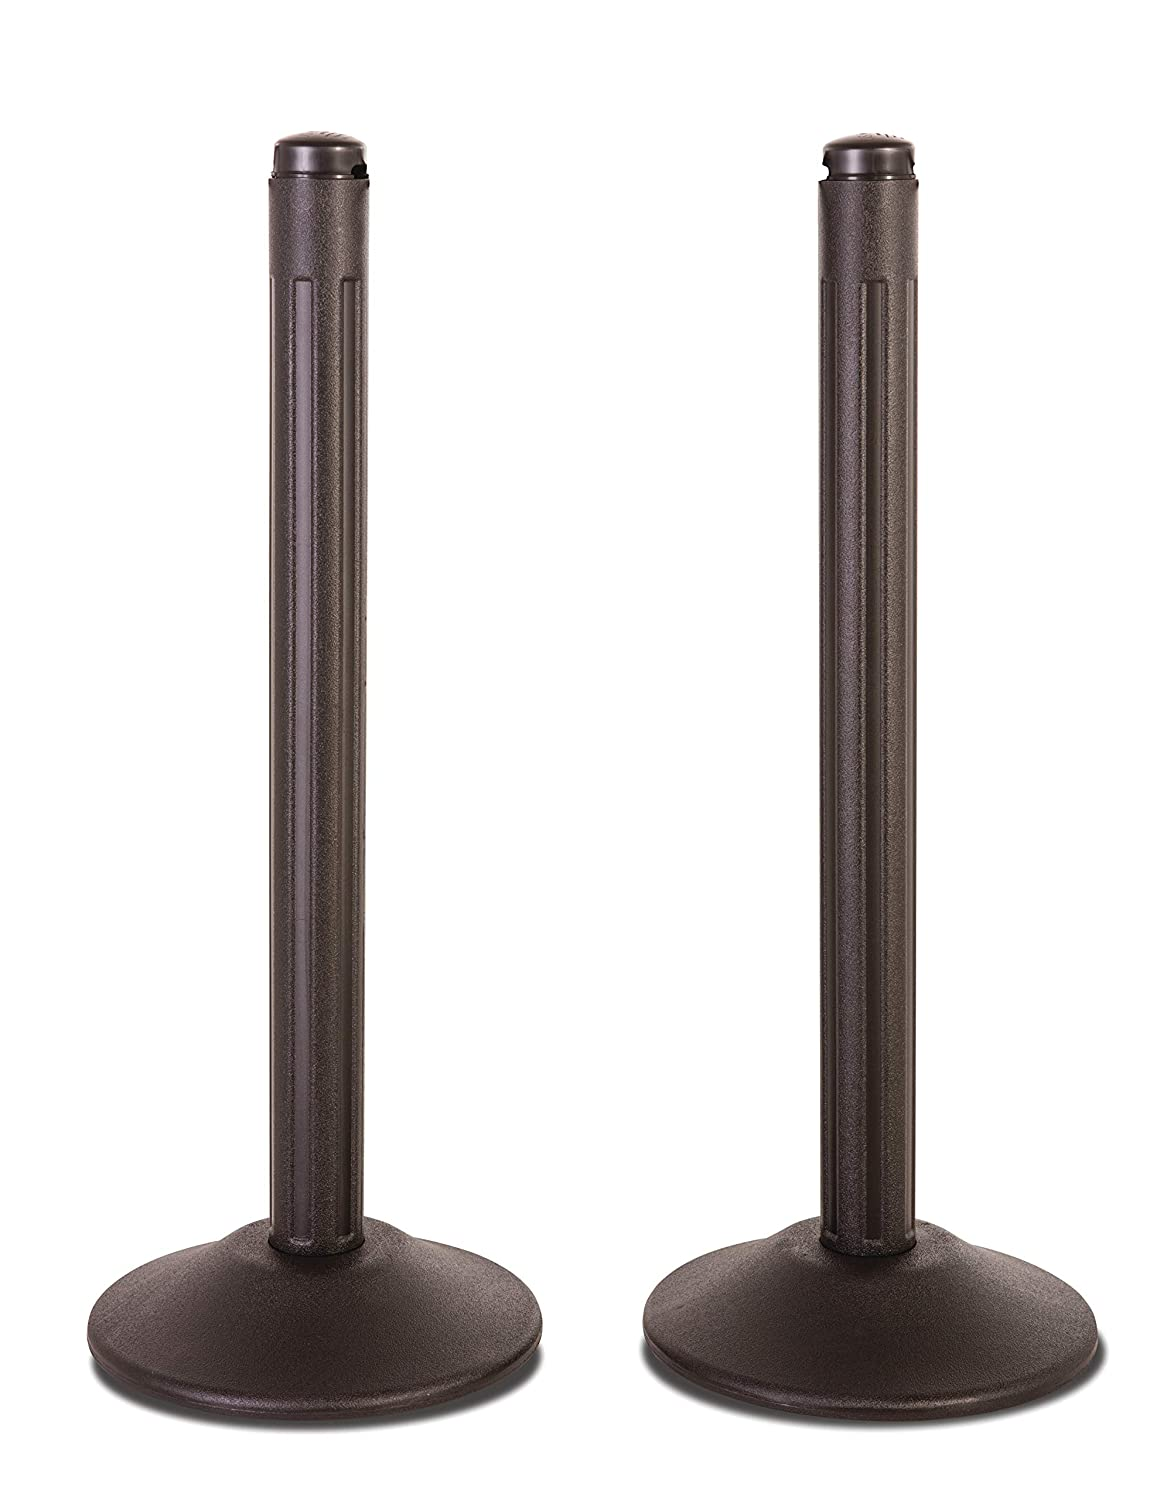 US Weight ChainBoss Stanchion with SunShield UV Protection – No Chain– Fillable Base